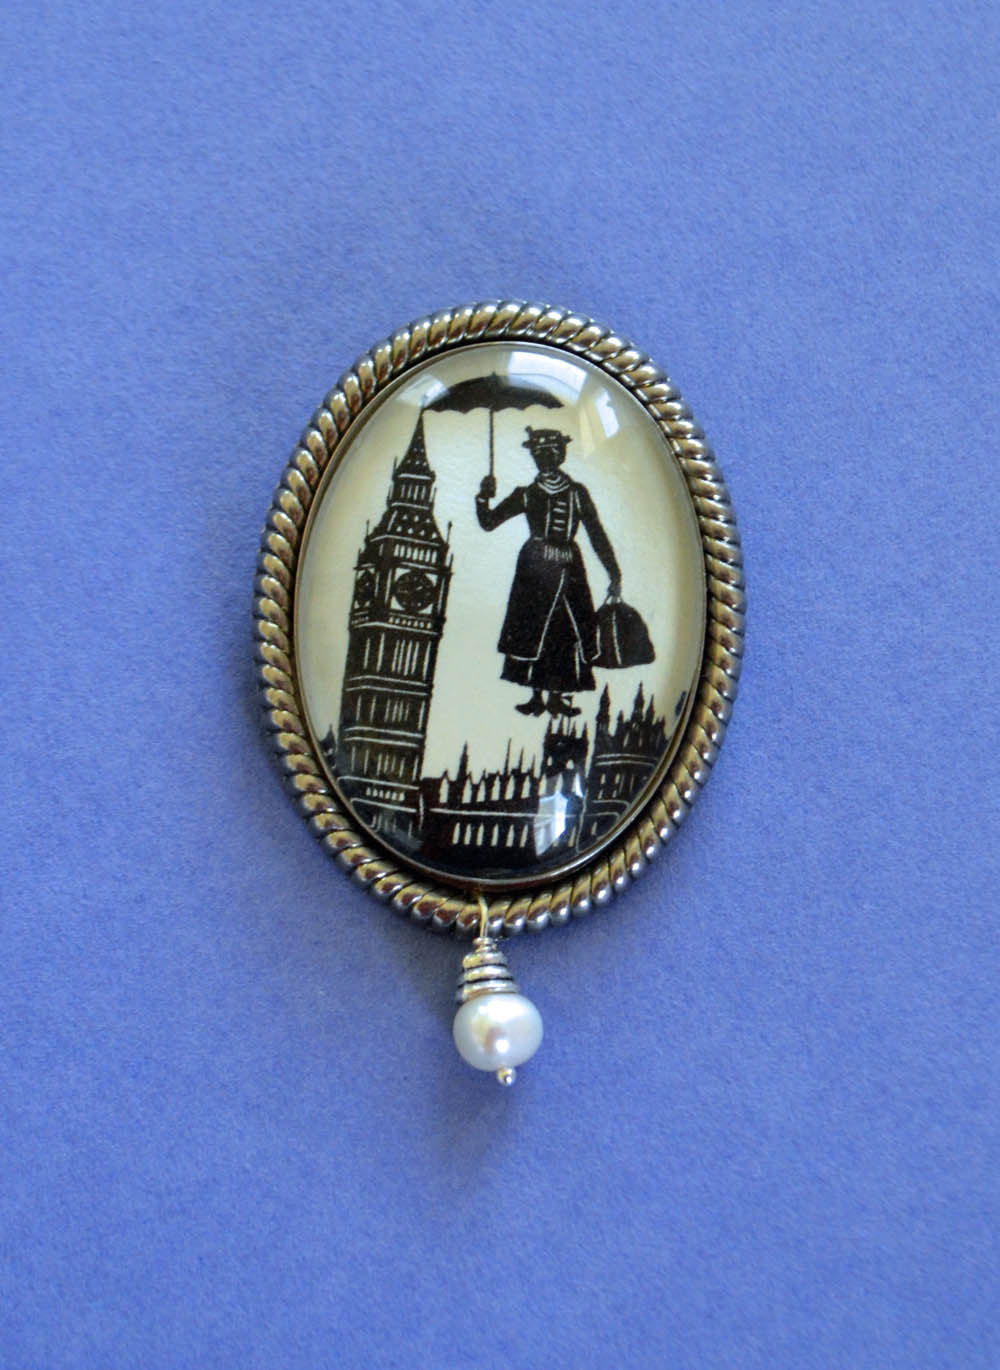 MARY POPPINS Brooch - Silhouette Jewelry